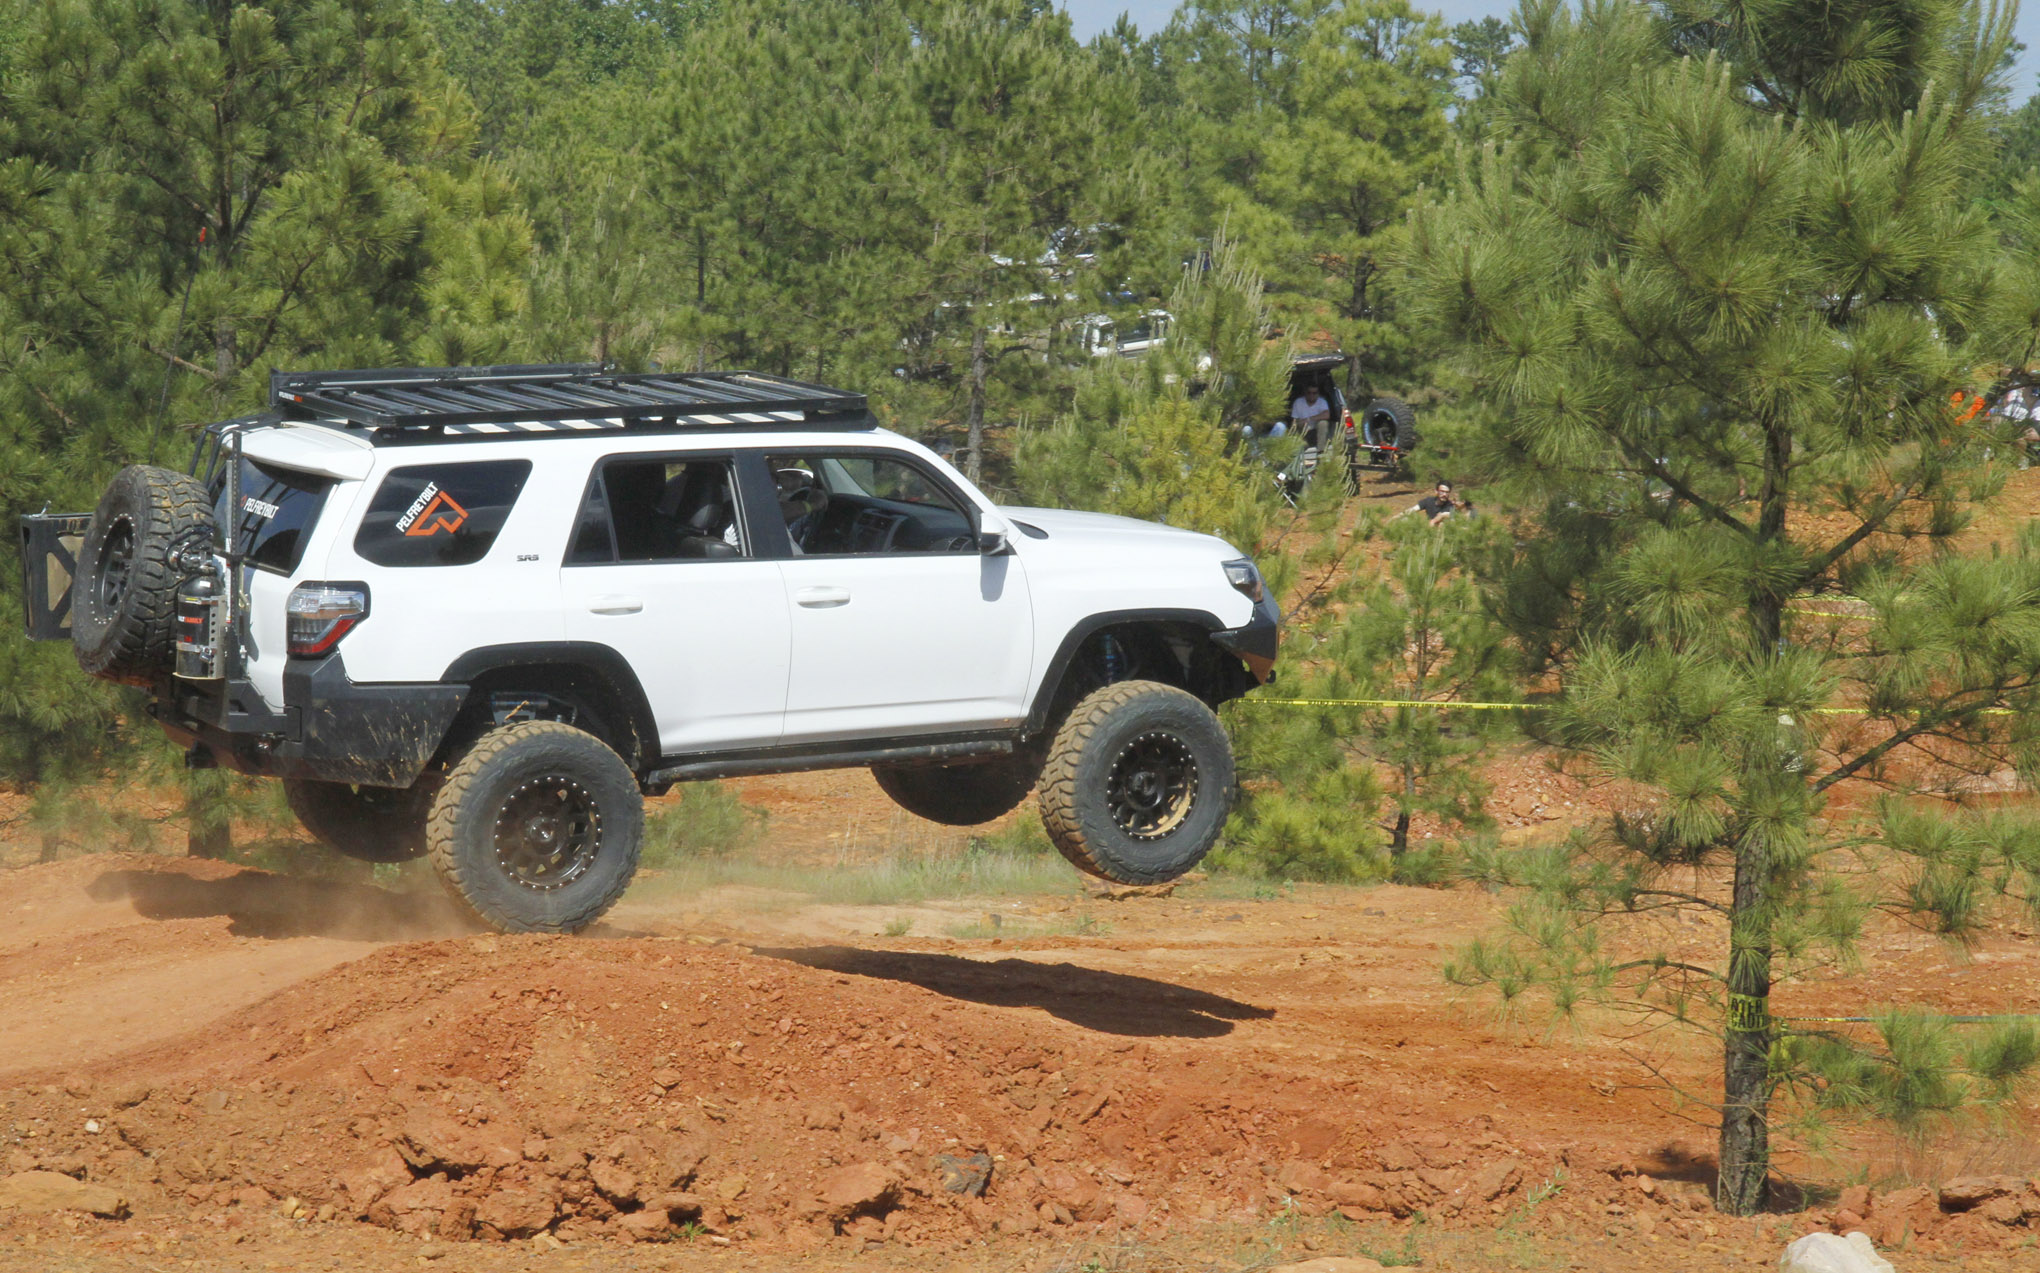 Saturday afternoon drivers competed in the Lone Star Stampede, a timed obstacle course. Tyler Pelfrey didn't hesitate to air out the family's well-built, late-model 4Runner.